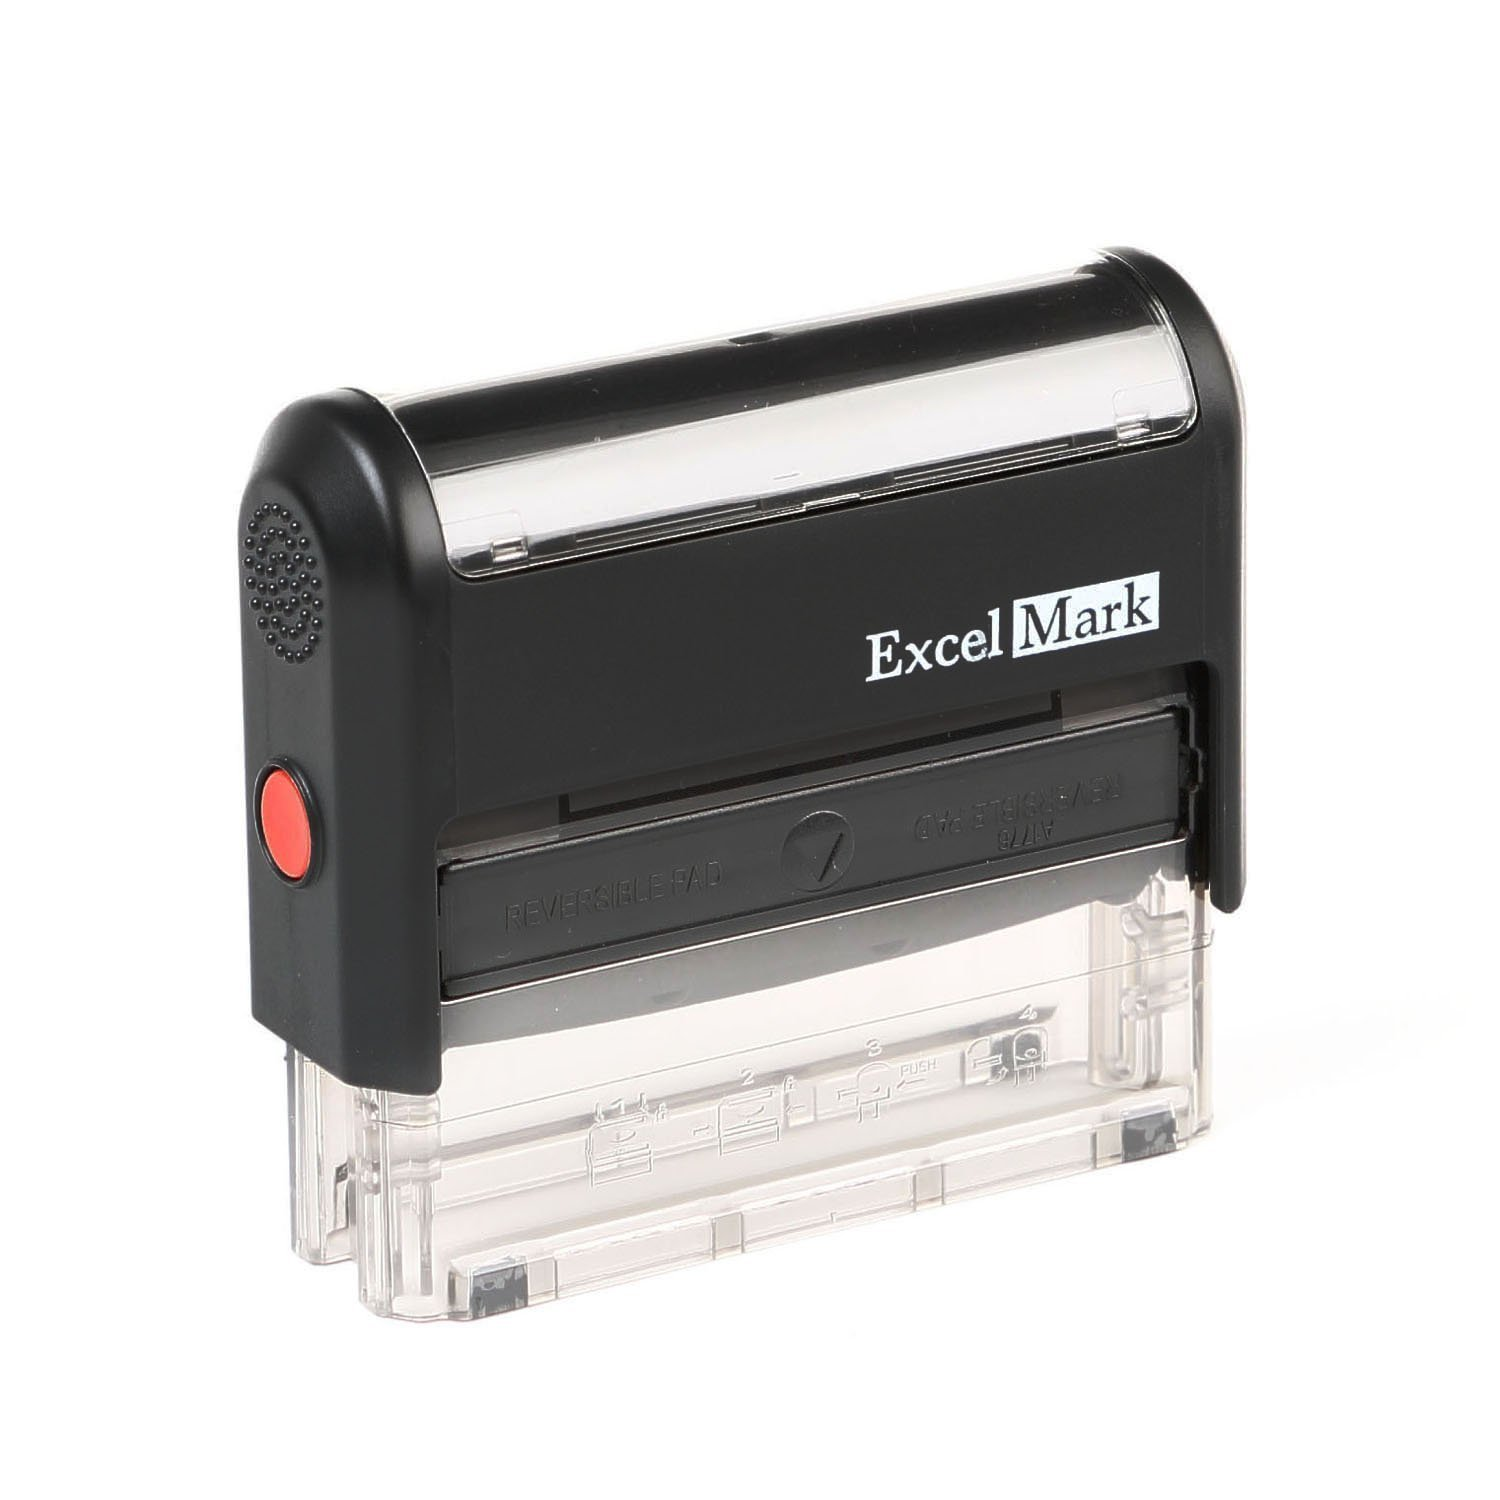 ExcelMark Custom 1 Line Self Inking Rubber Stamp - Home or Office - A1069 by ExcelMark (Image #1)